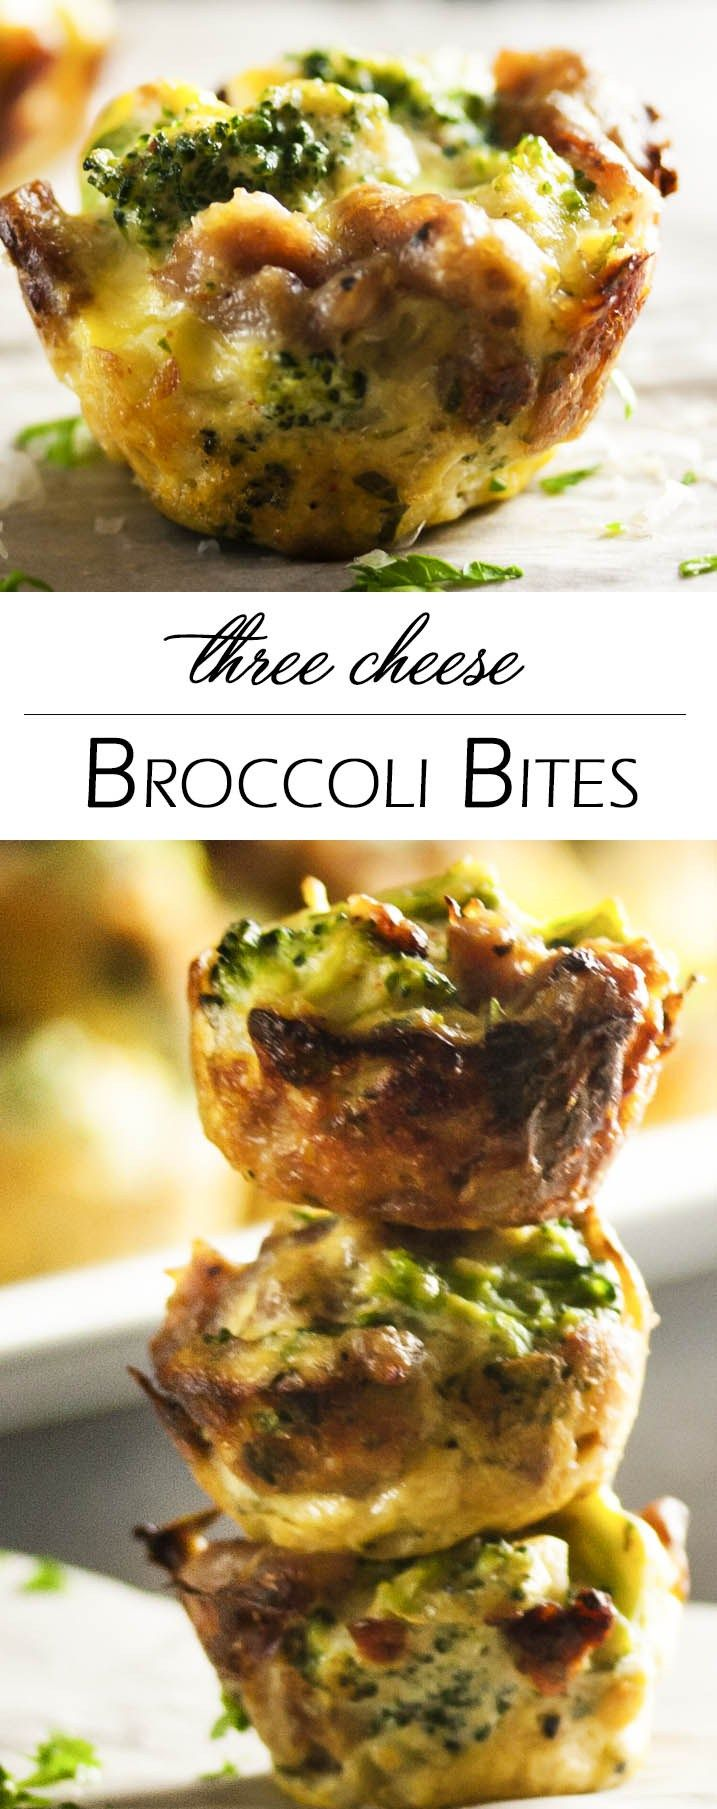 Three Cheese Broccoli Bites - Italian sausage and ricotta combine with broccoli and even more cheese to pack a pile of flavor into each little bite. Excellent as a side dish or an appetizer! | justalittlebitofbacon.com